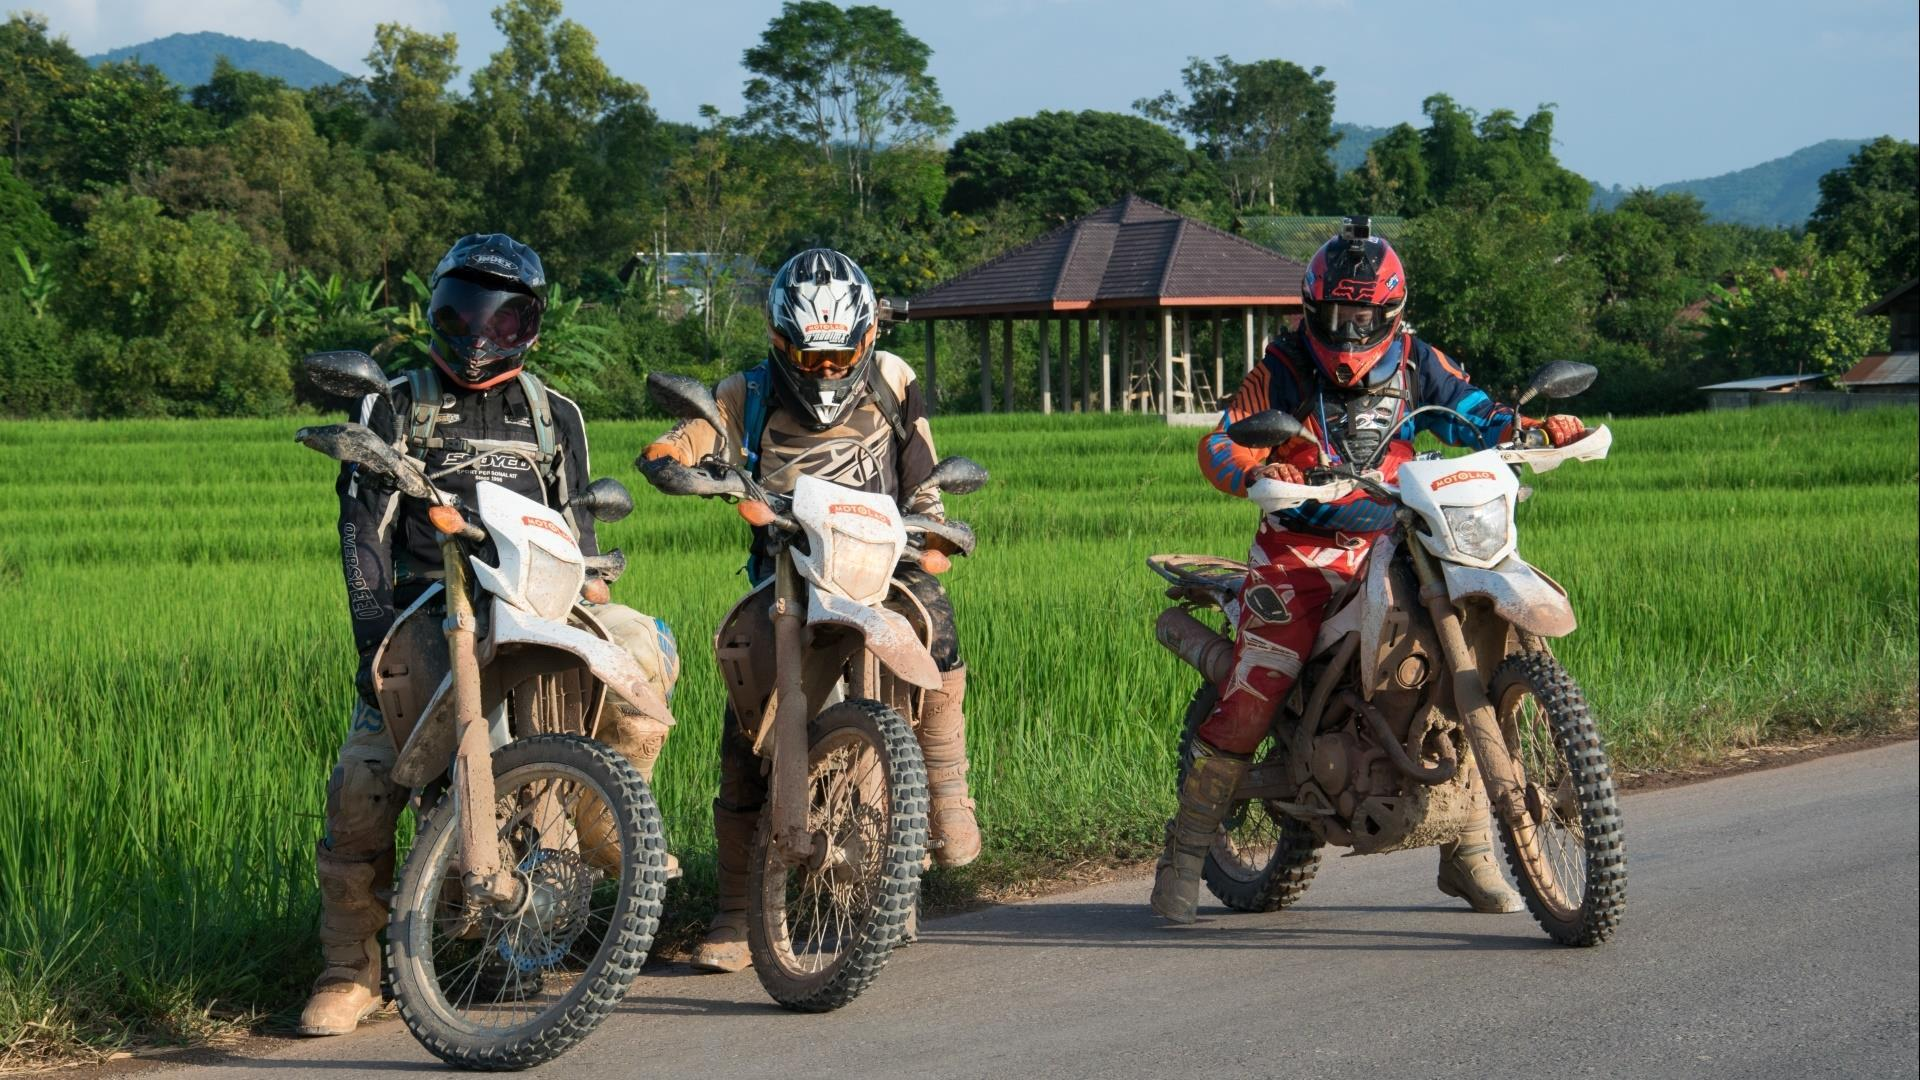 Luang Prabang – Nong Khiaw: River Valley Motorcycle Explorer - 3 days | Explore rivers and waterfalls